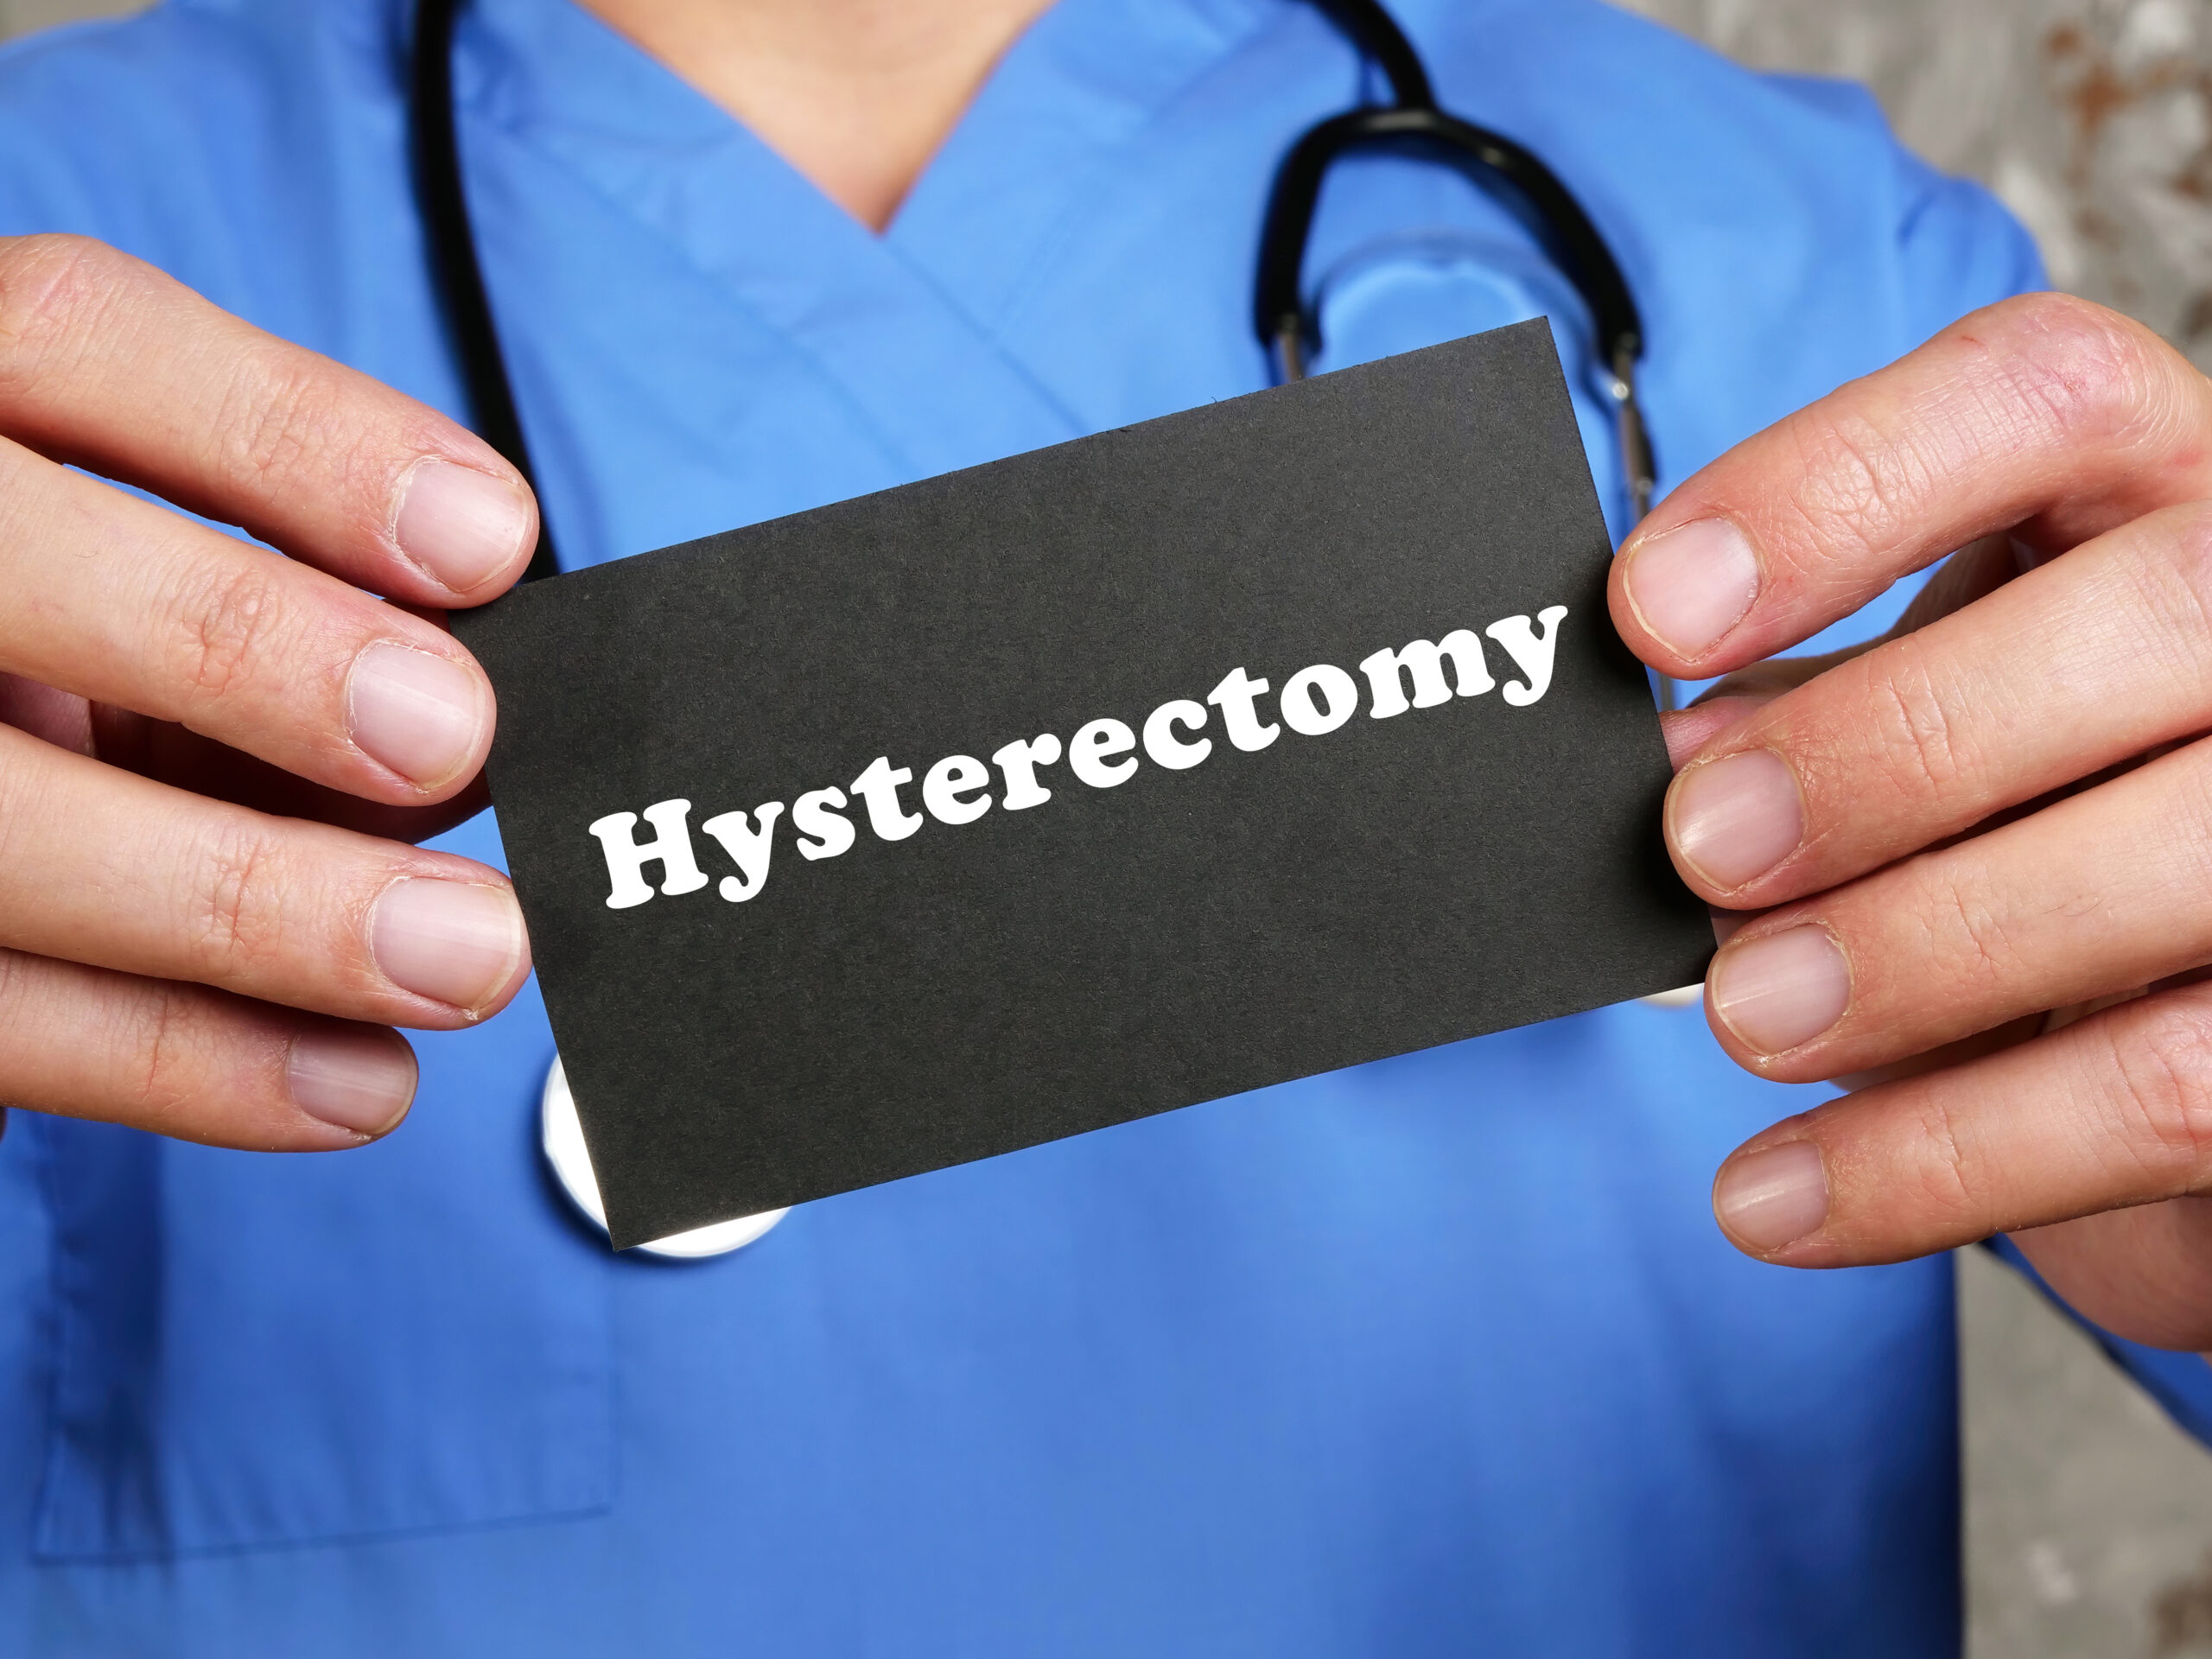 Health care concept about Hysterectomy with inscription on the p